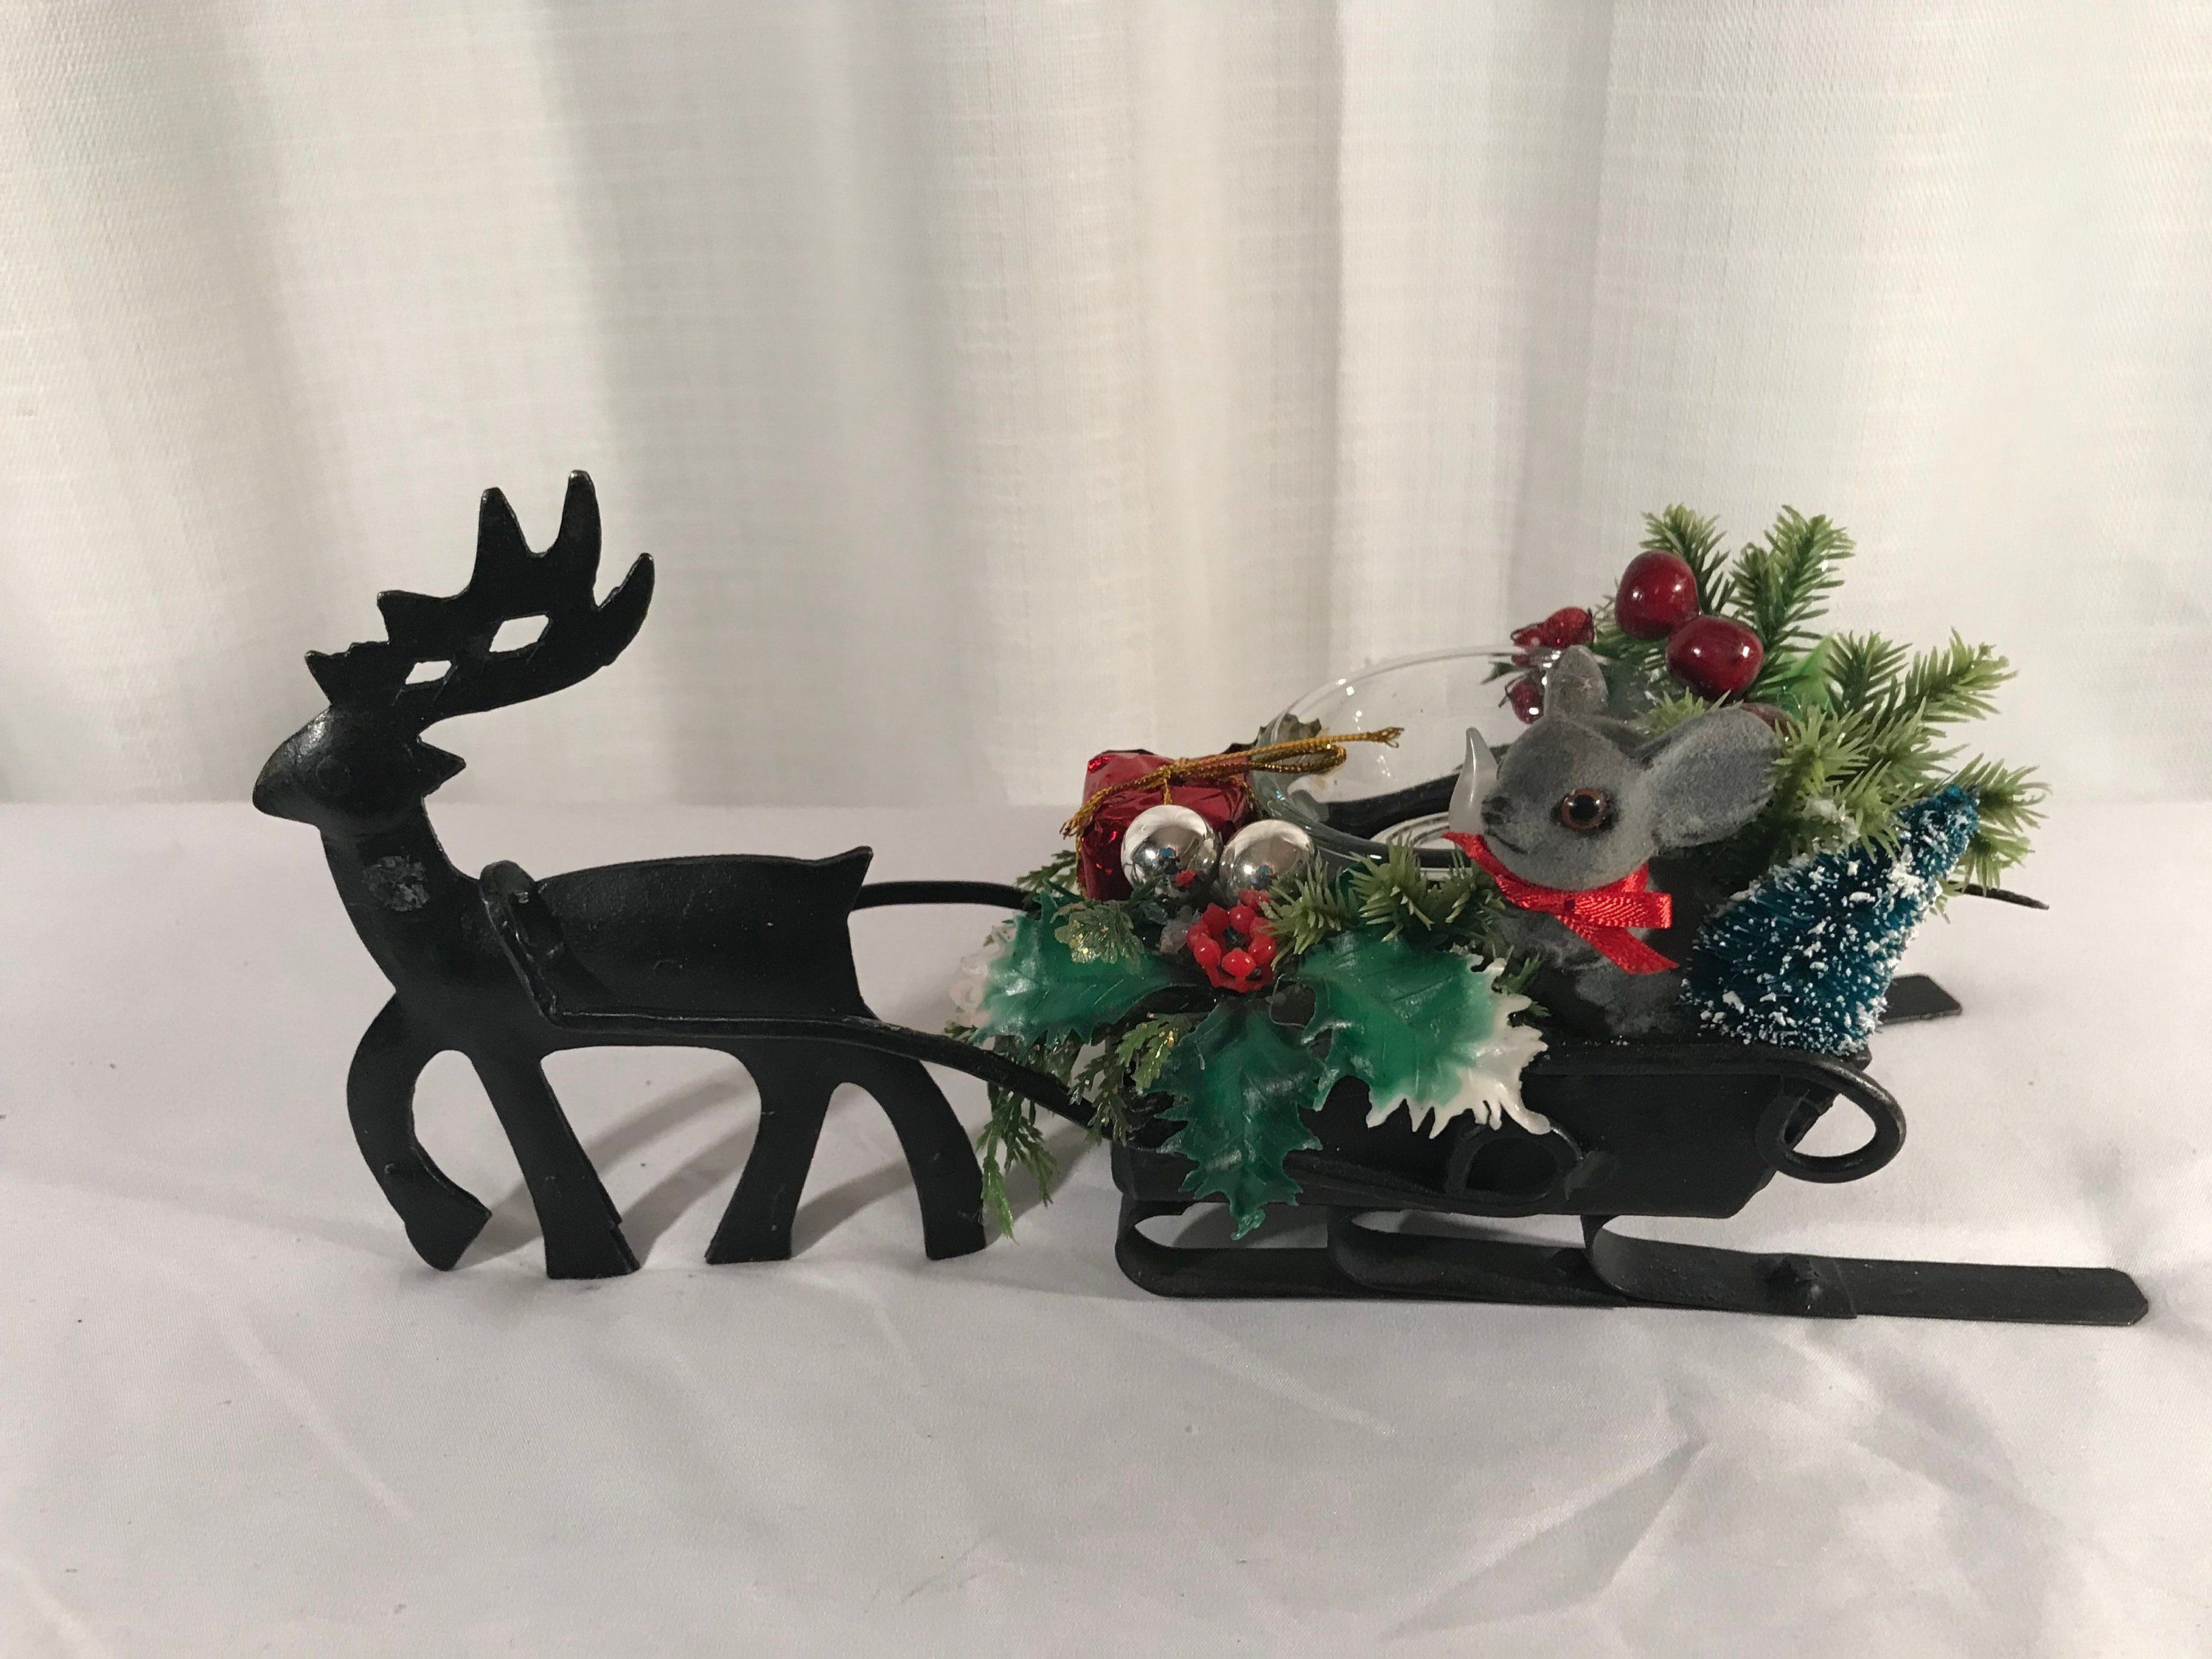 Reindeer Center Piece Christmas Decor Vintage One